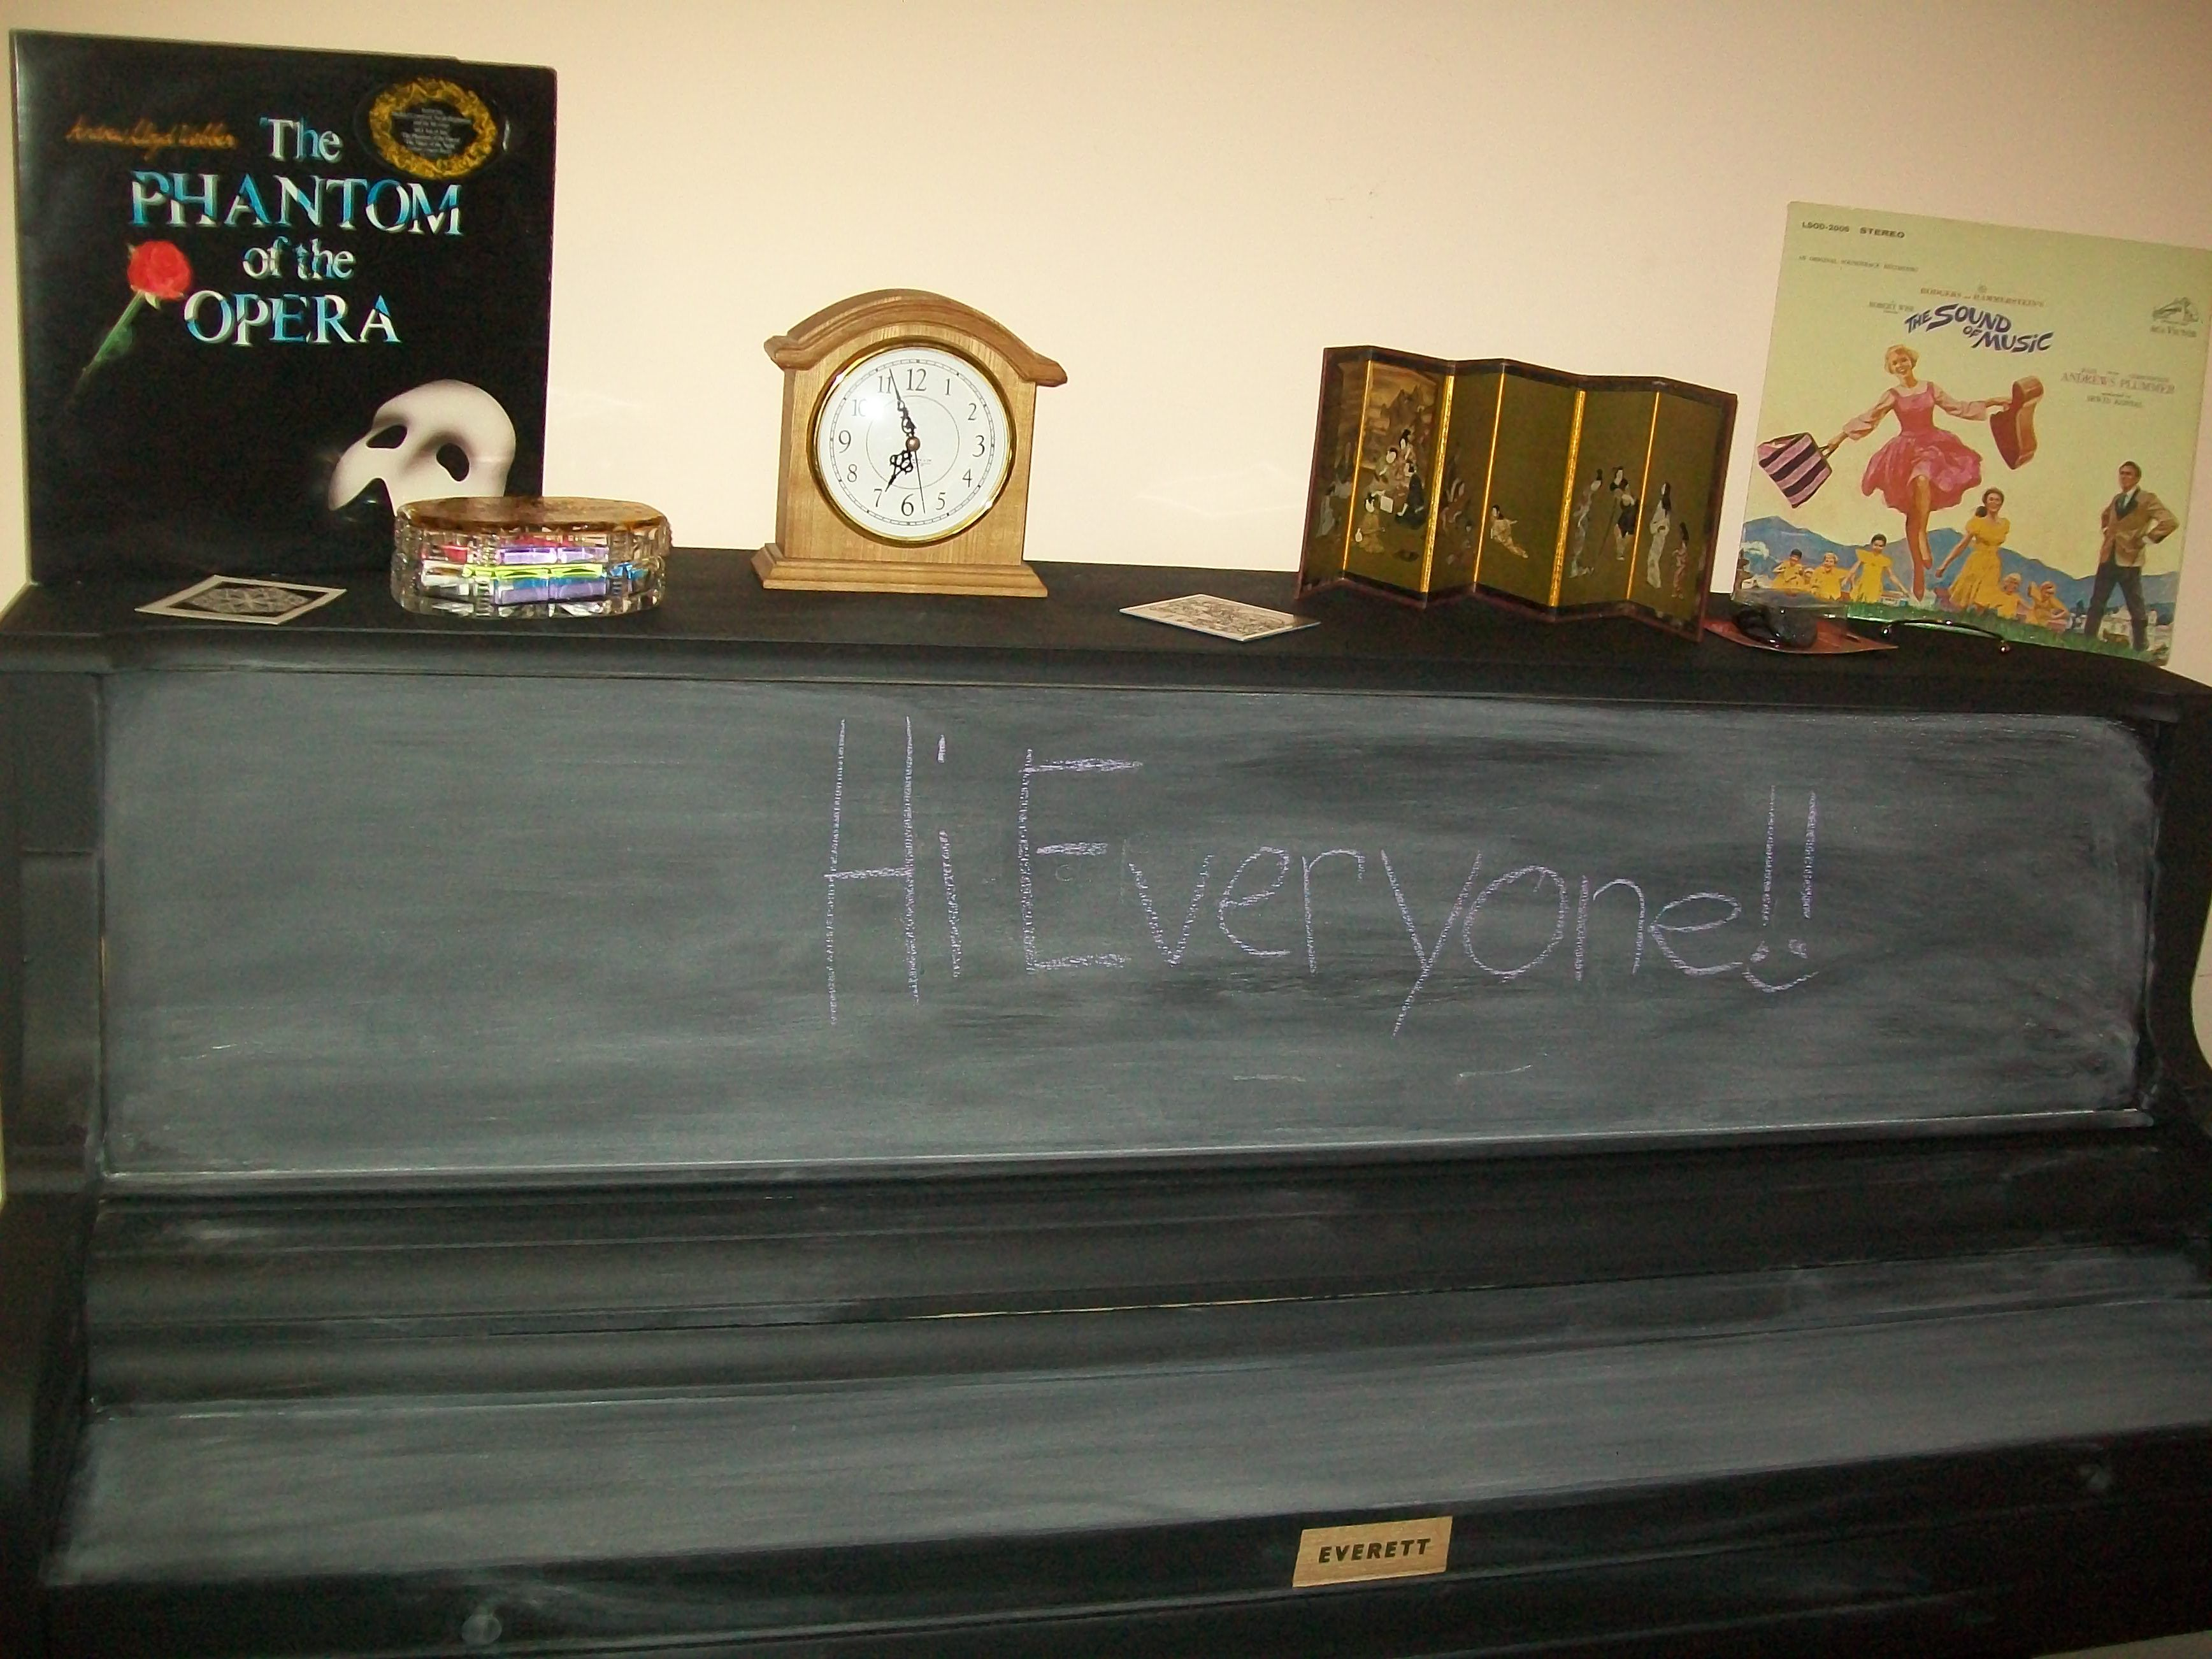 When we got this piano it was really ugly so we painted it with chalkboard paint (never paint the back panel of a piano or it will change the sound). This is great for piano teachers like me!